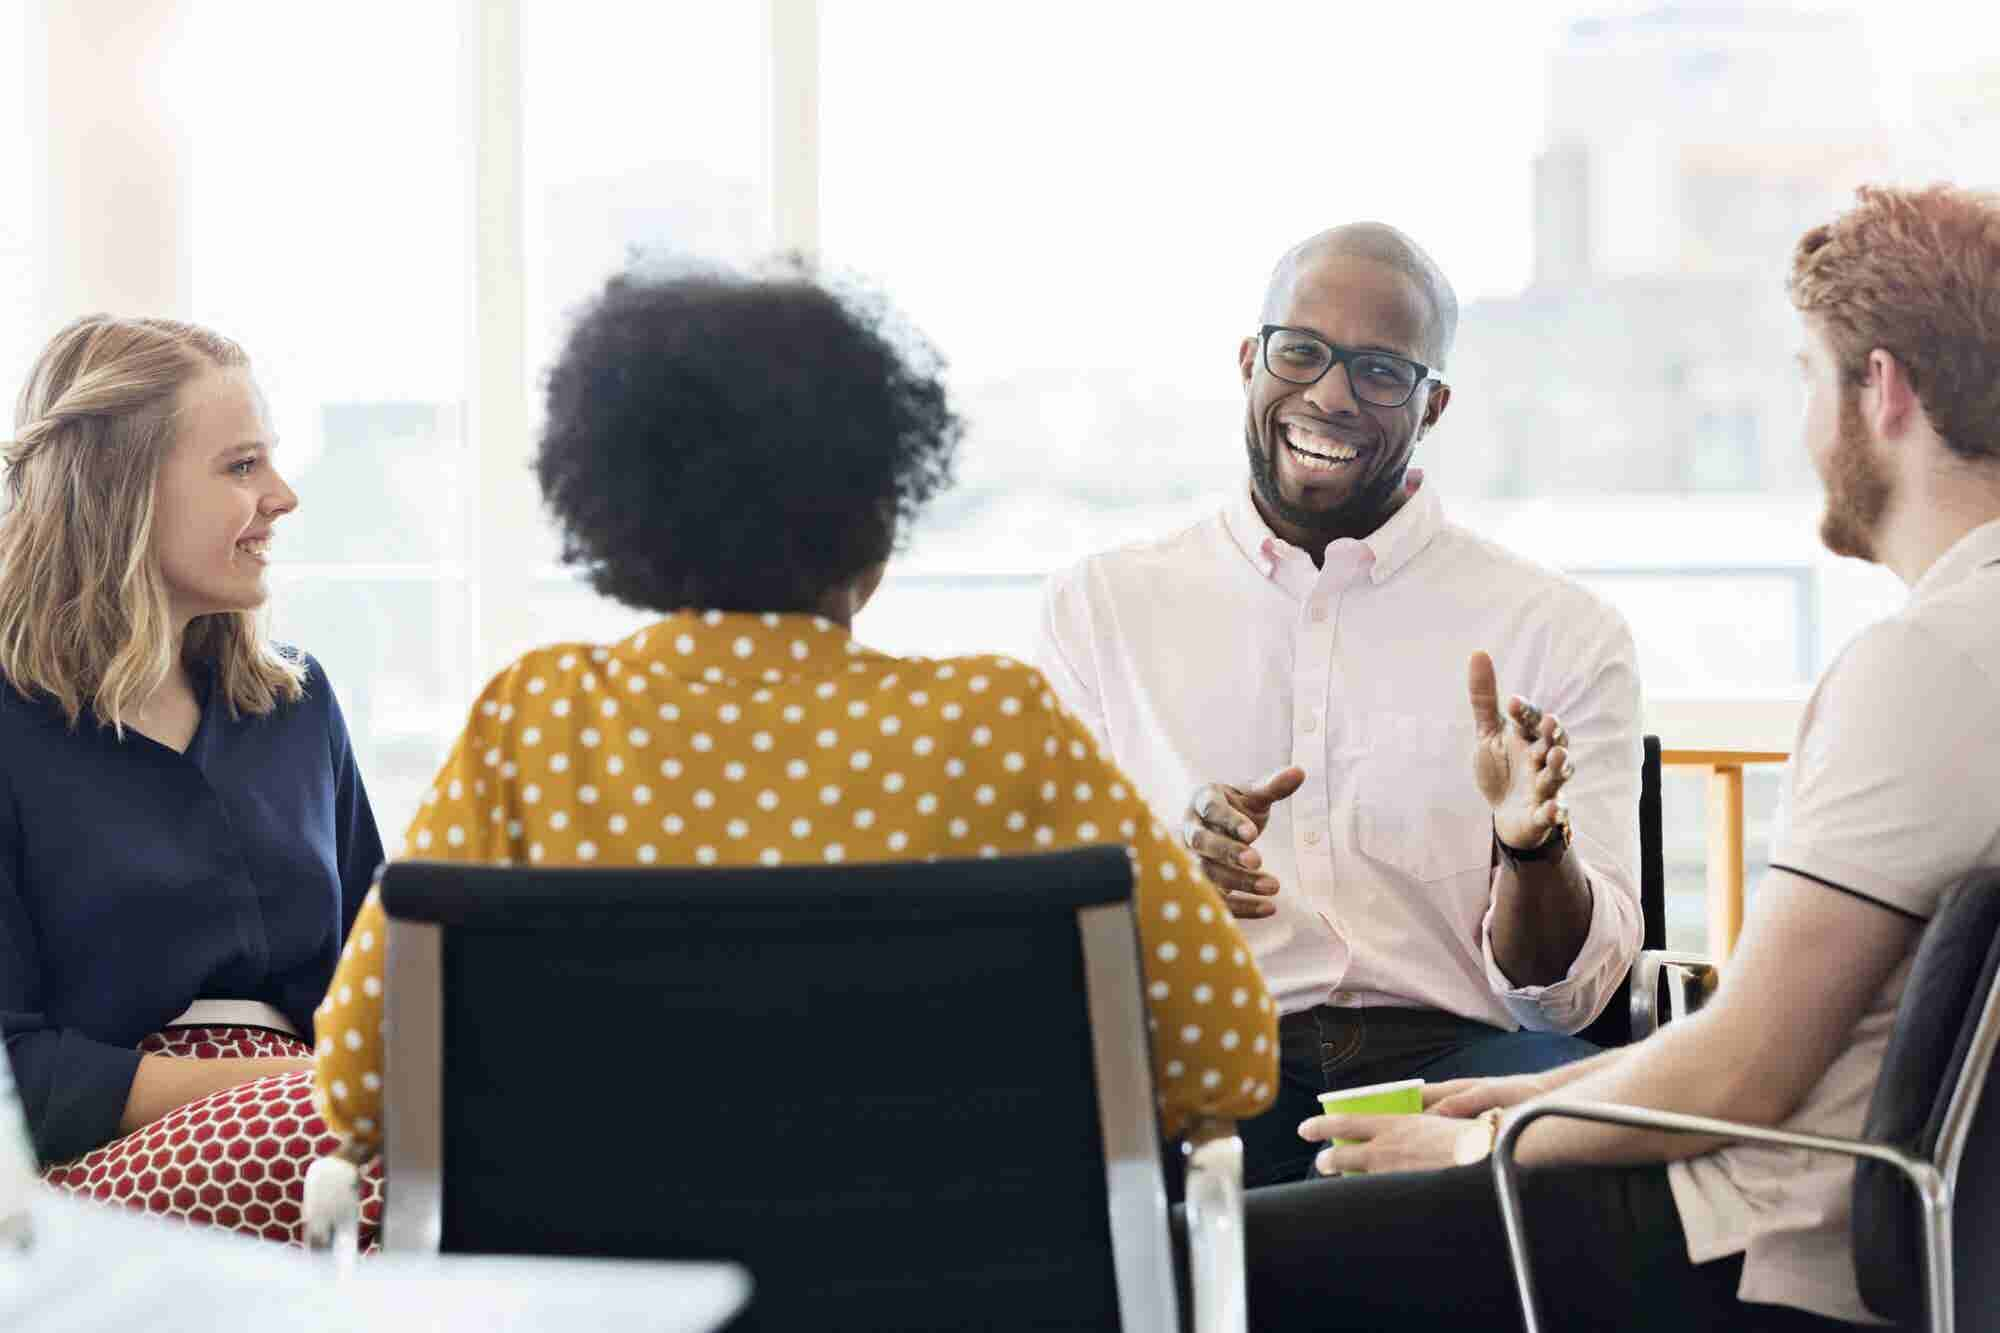 How to Be a More Likable and Charismatic Leader